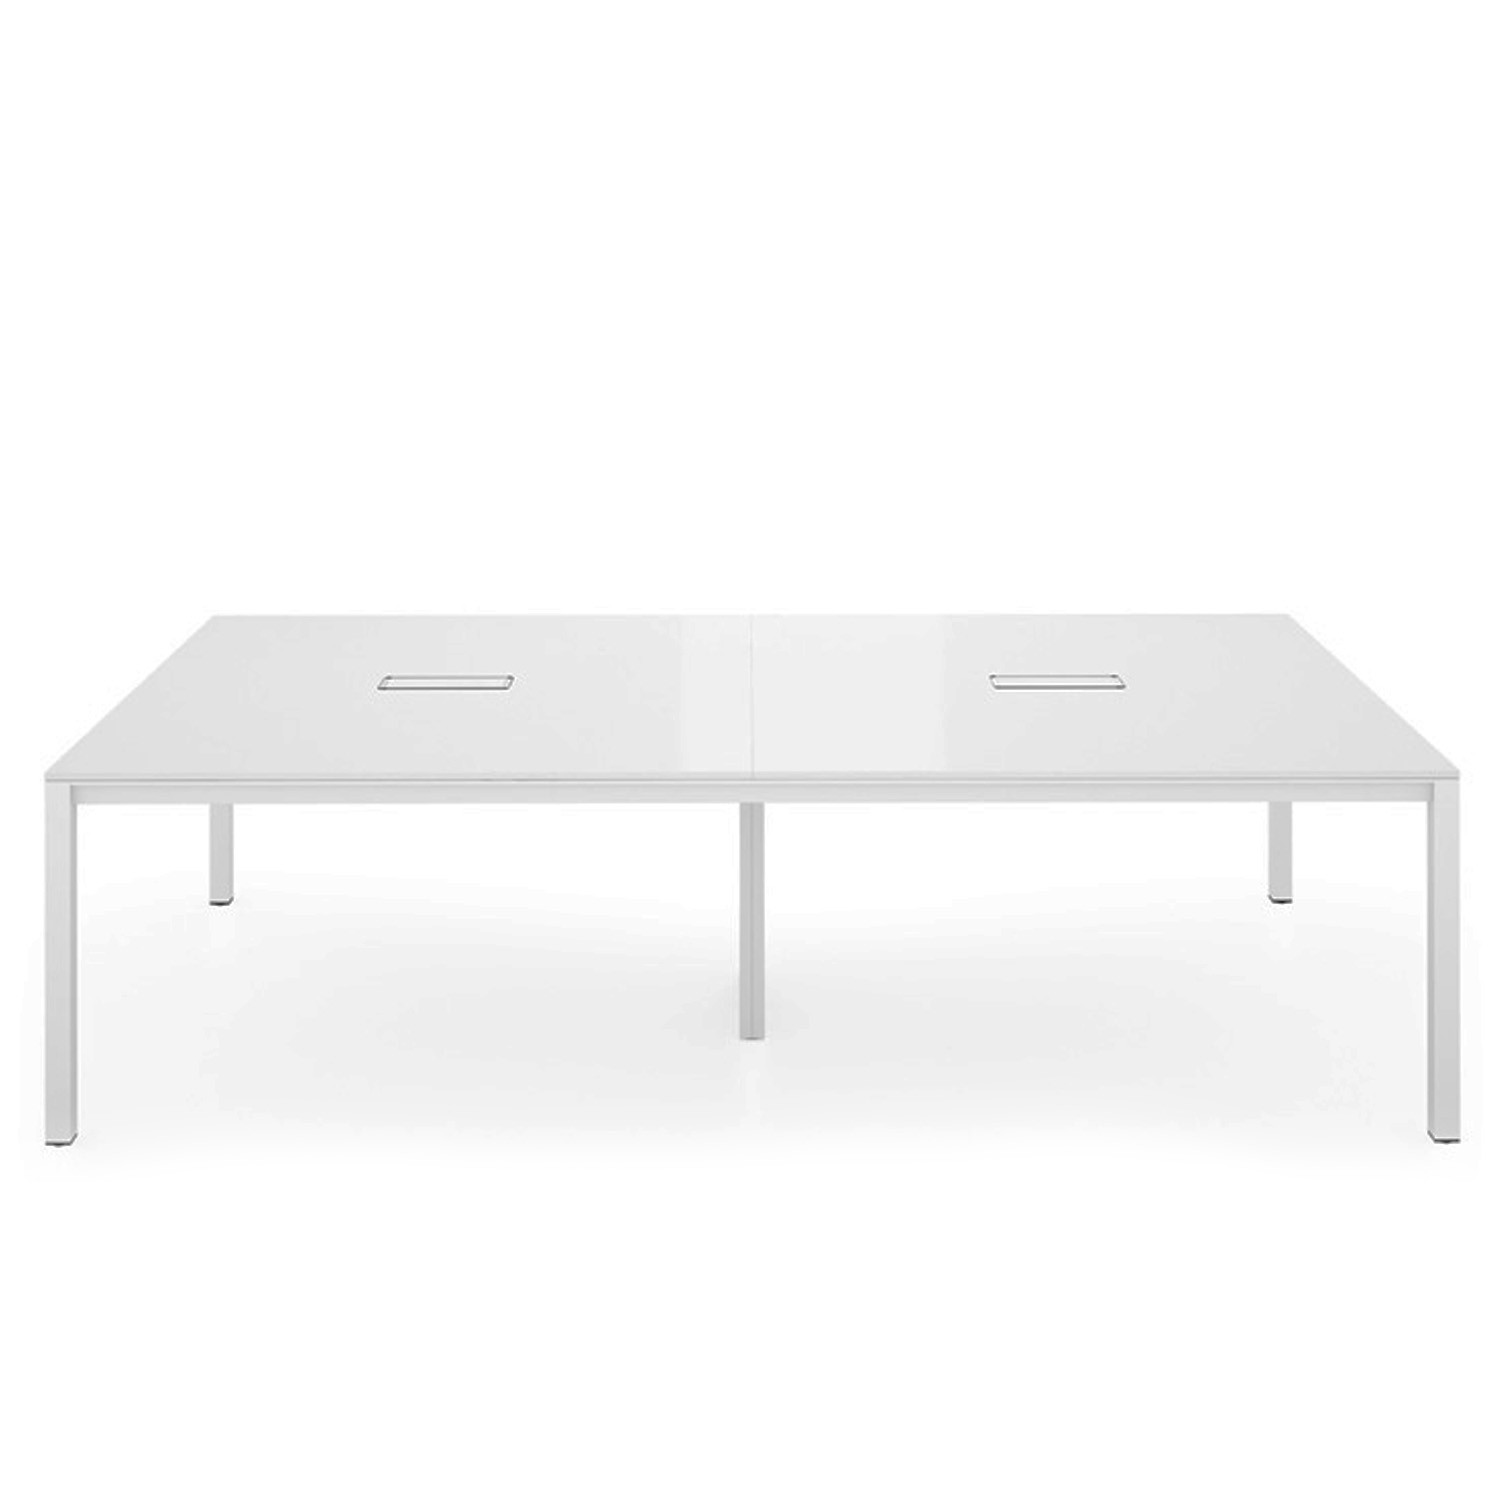 P50 Rectangular Office Meeting Table